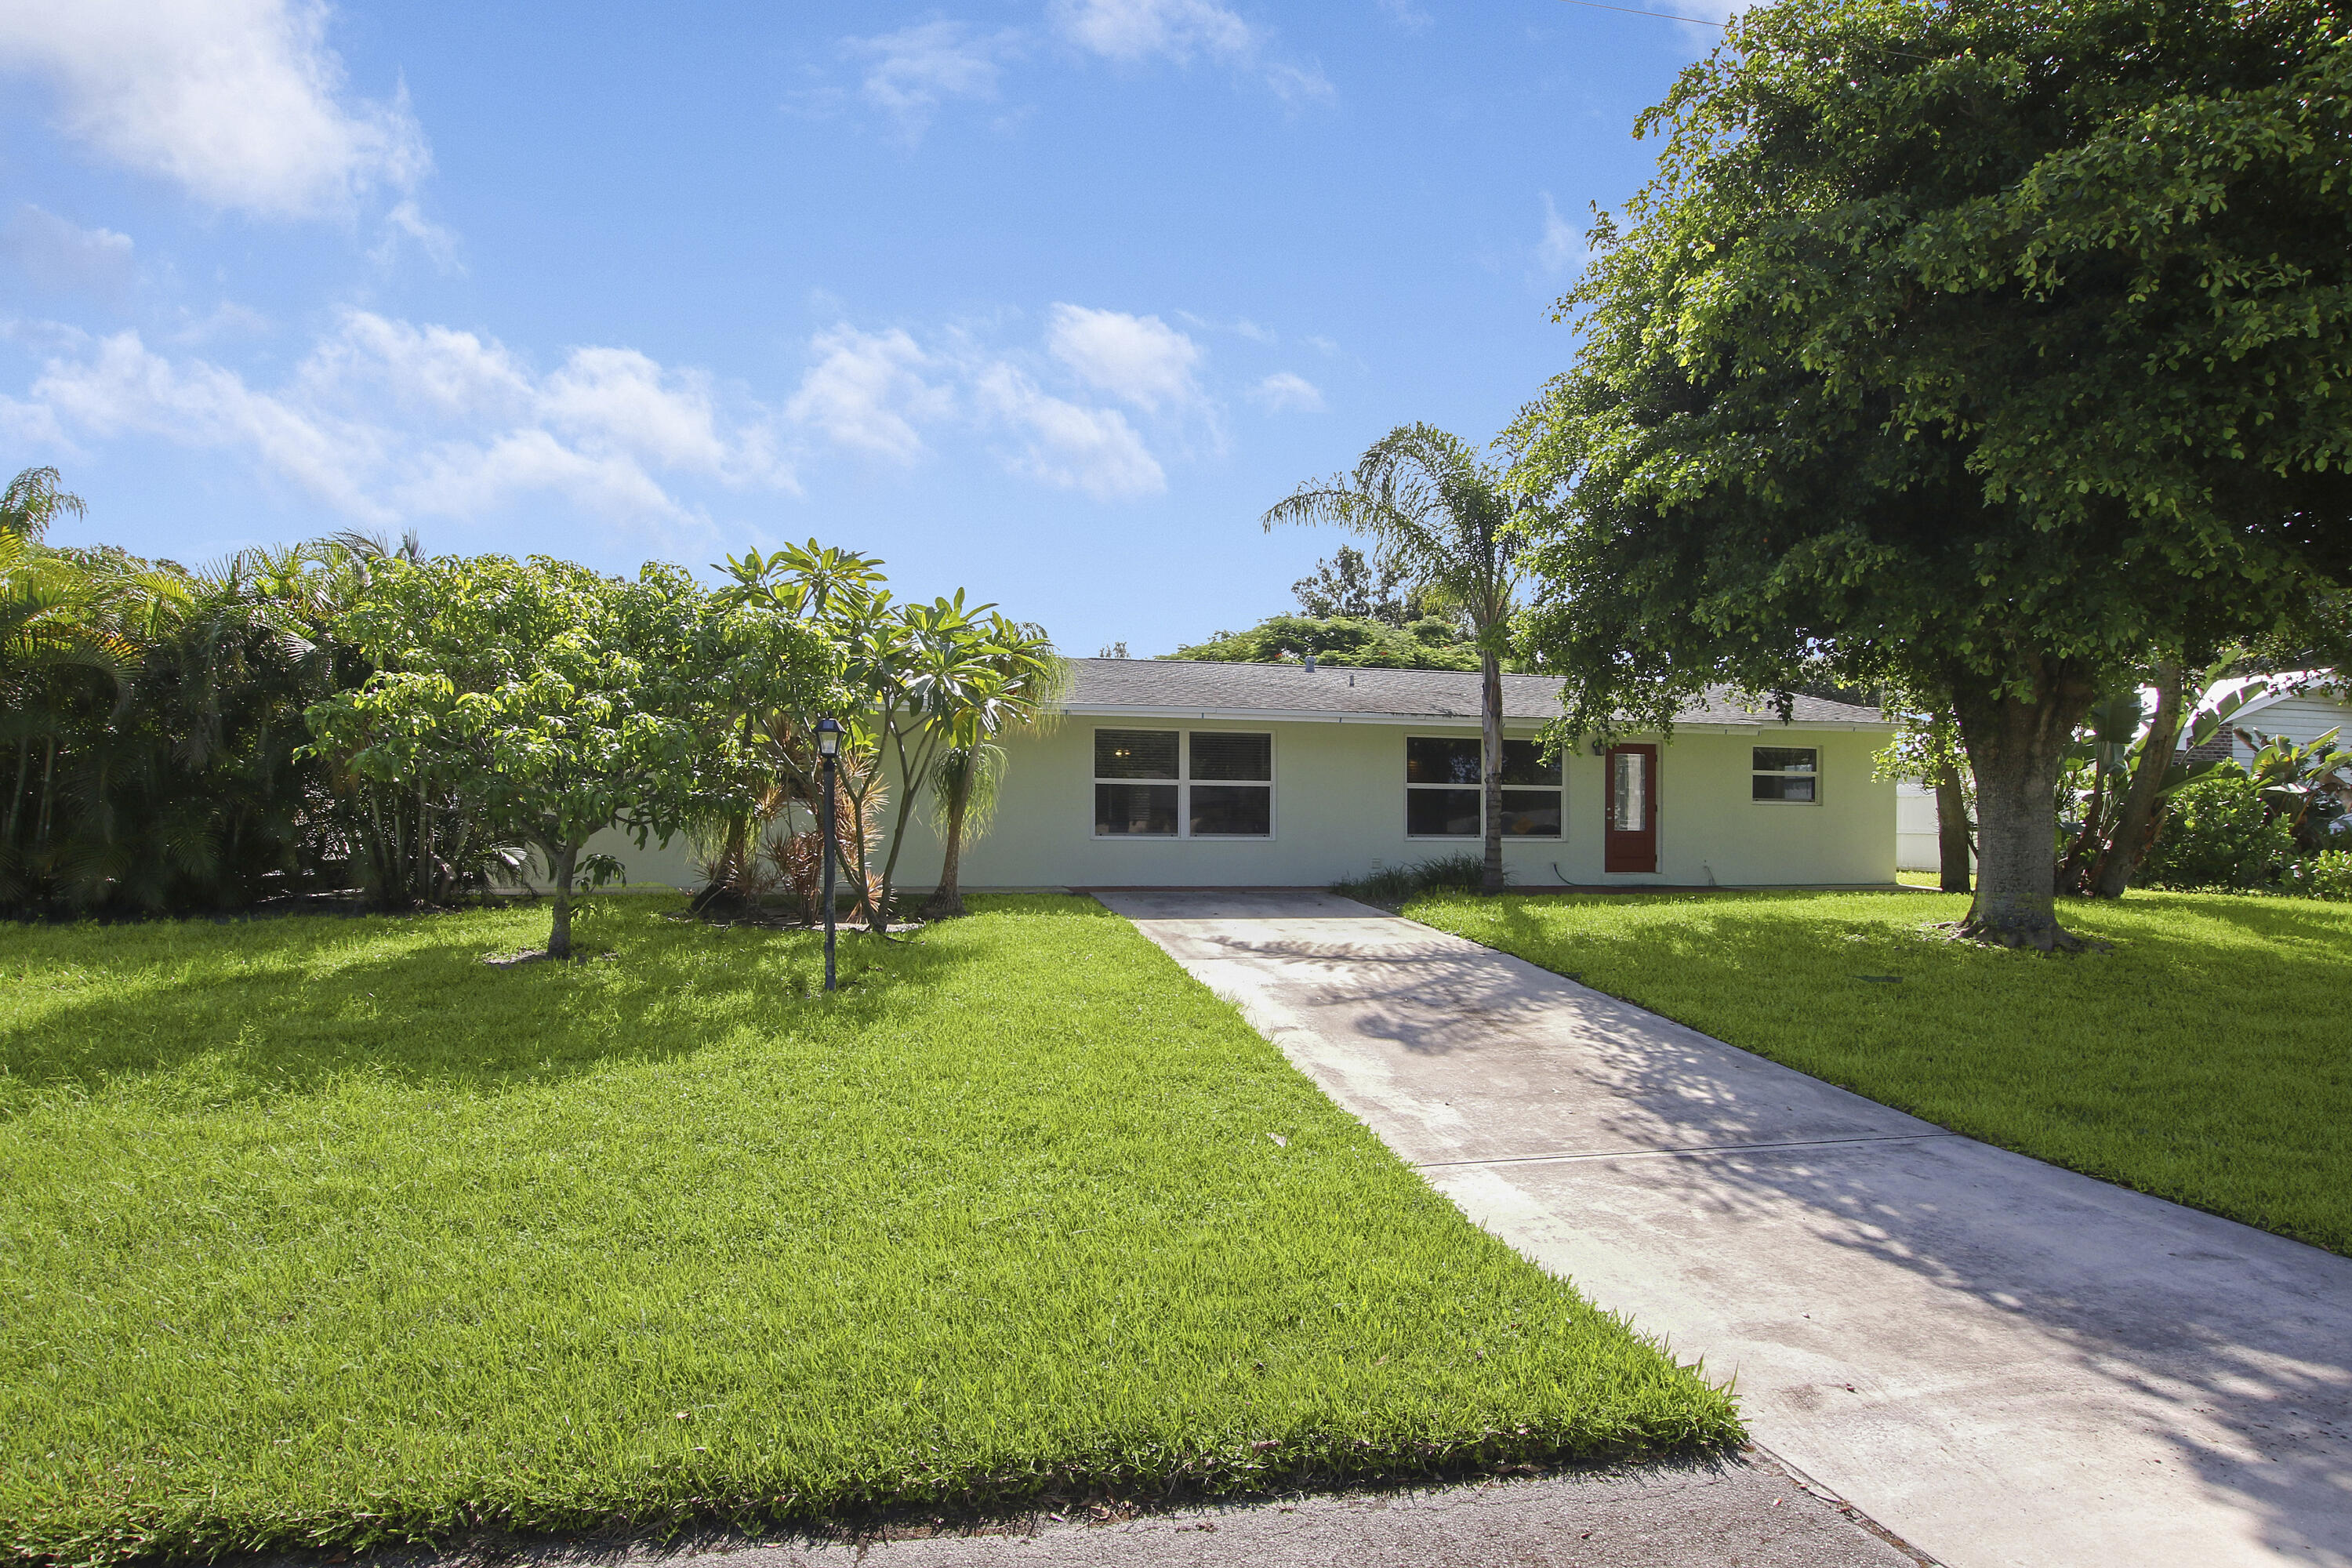 Charming 3/2 CBS home located in the heart of Tequesta. This home is located on a very large lot for the area. This is a must see. NO HOA, Impact Windows, and ready to move right in.